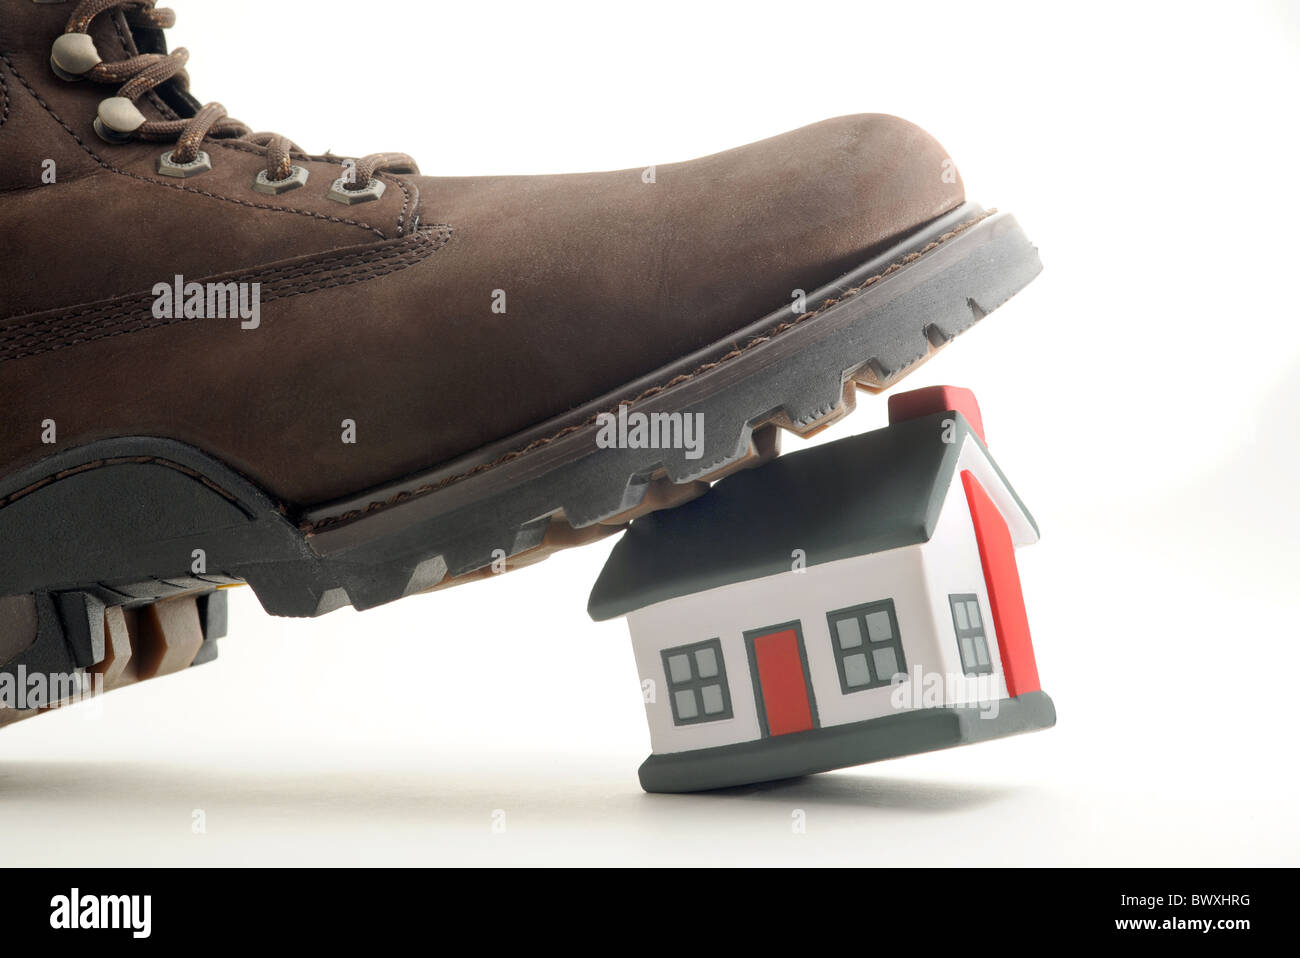 HOUSE BEING TROD ON BY MANS BOOT RE HOUSING MARKETS MORTGAGES PRICES ETC UK - Stock Image